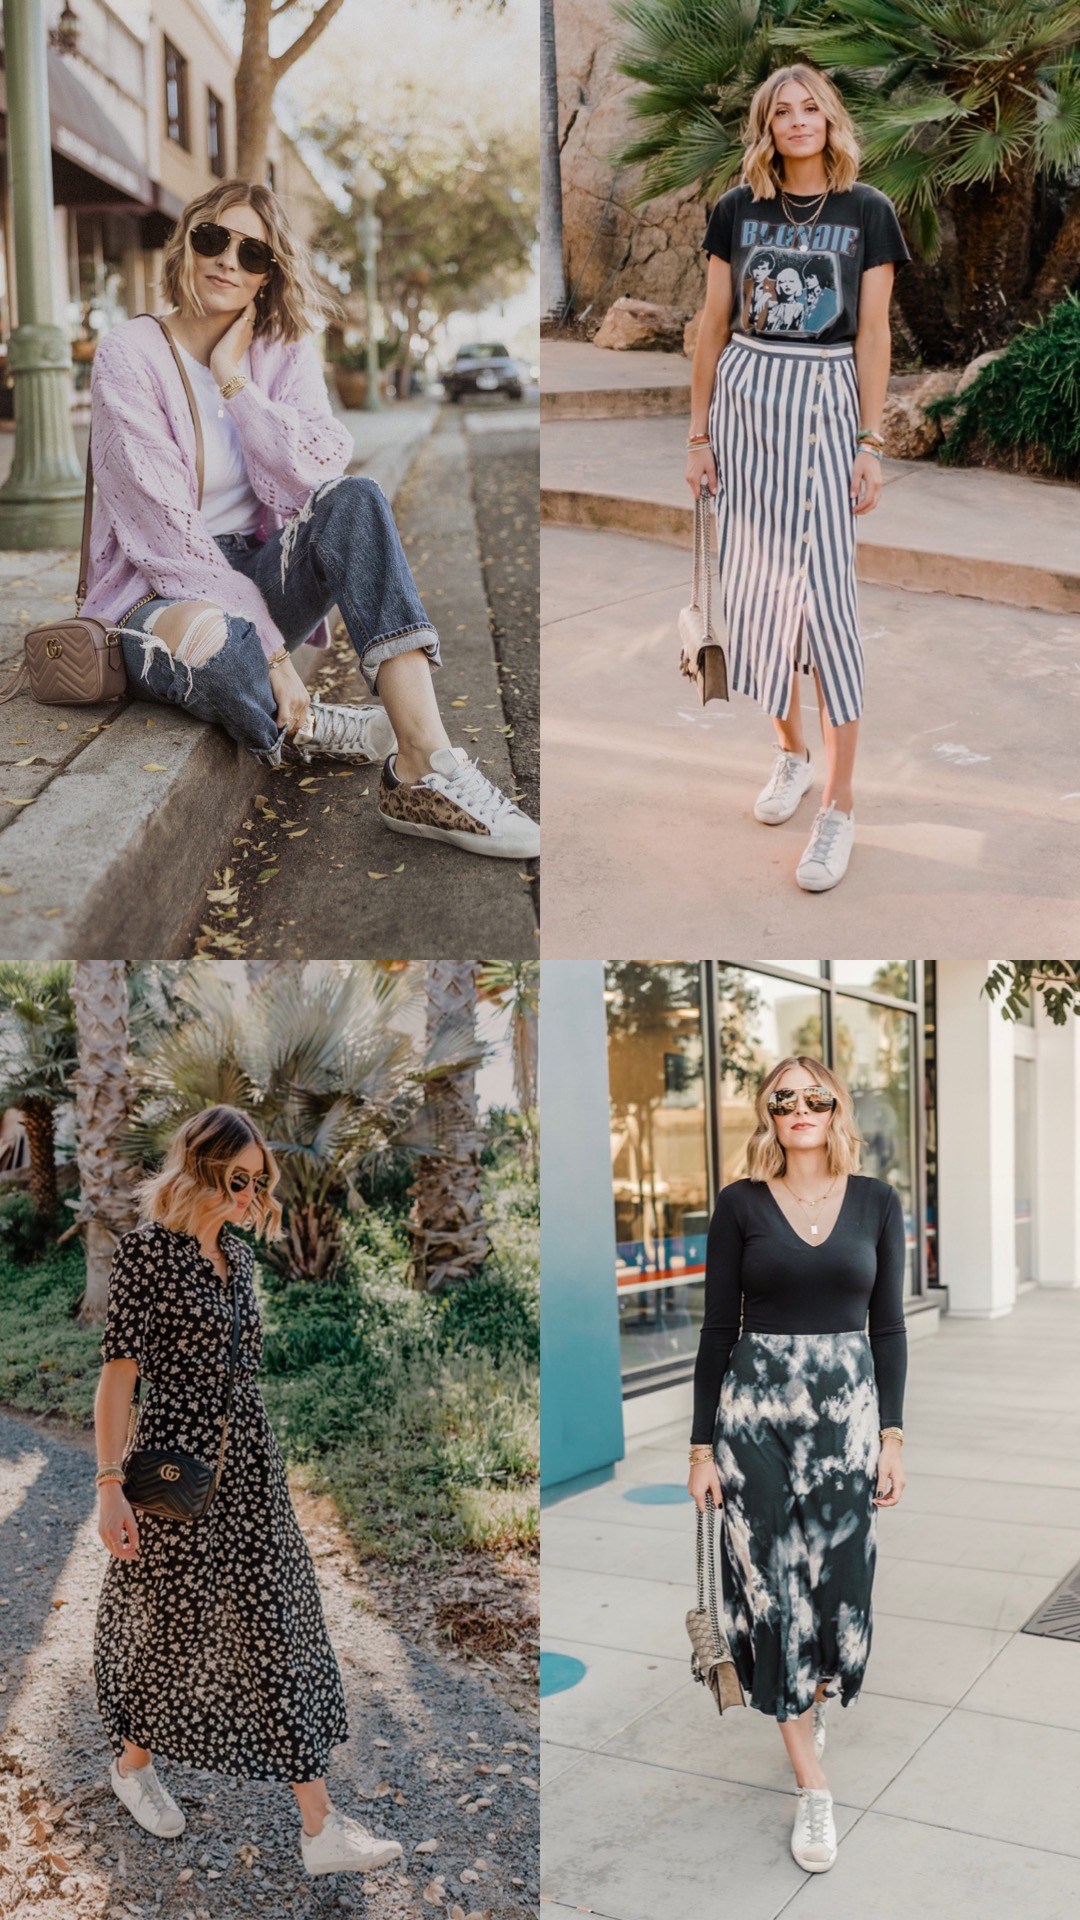 Golden Goose Sneakers by popular San Diego fashion blog, Navy Grace: image of a woman wearing a purple sweater, band t-shirt, blue and white strip skirt, black and white print floral dress, and black tie dye skirt with various Golden Goose Sneakers.